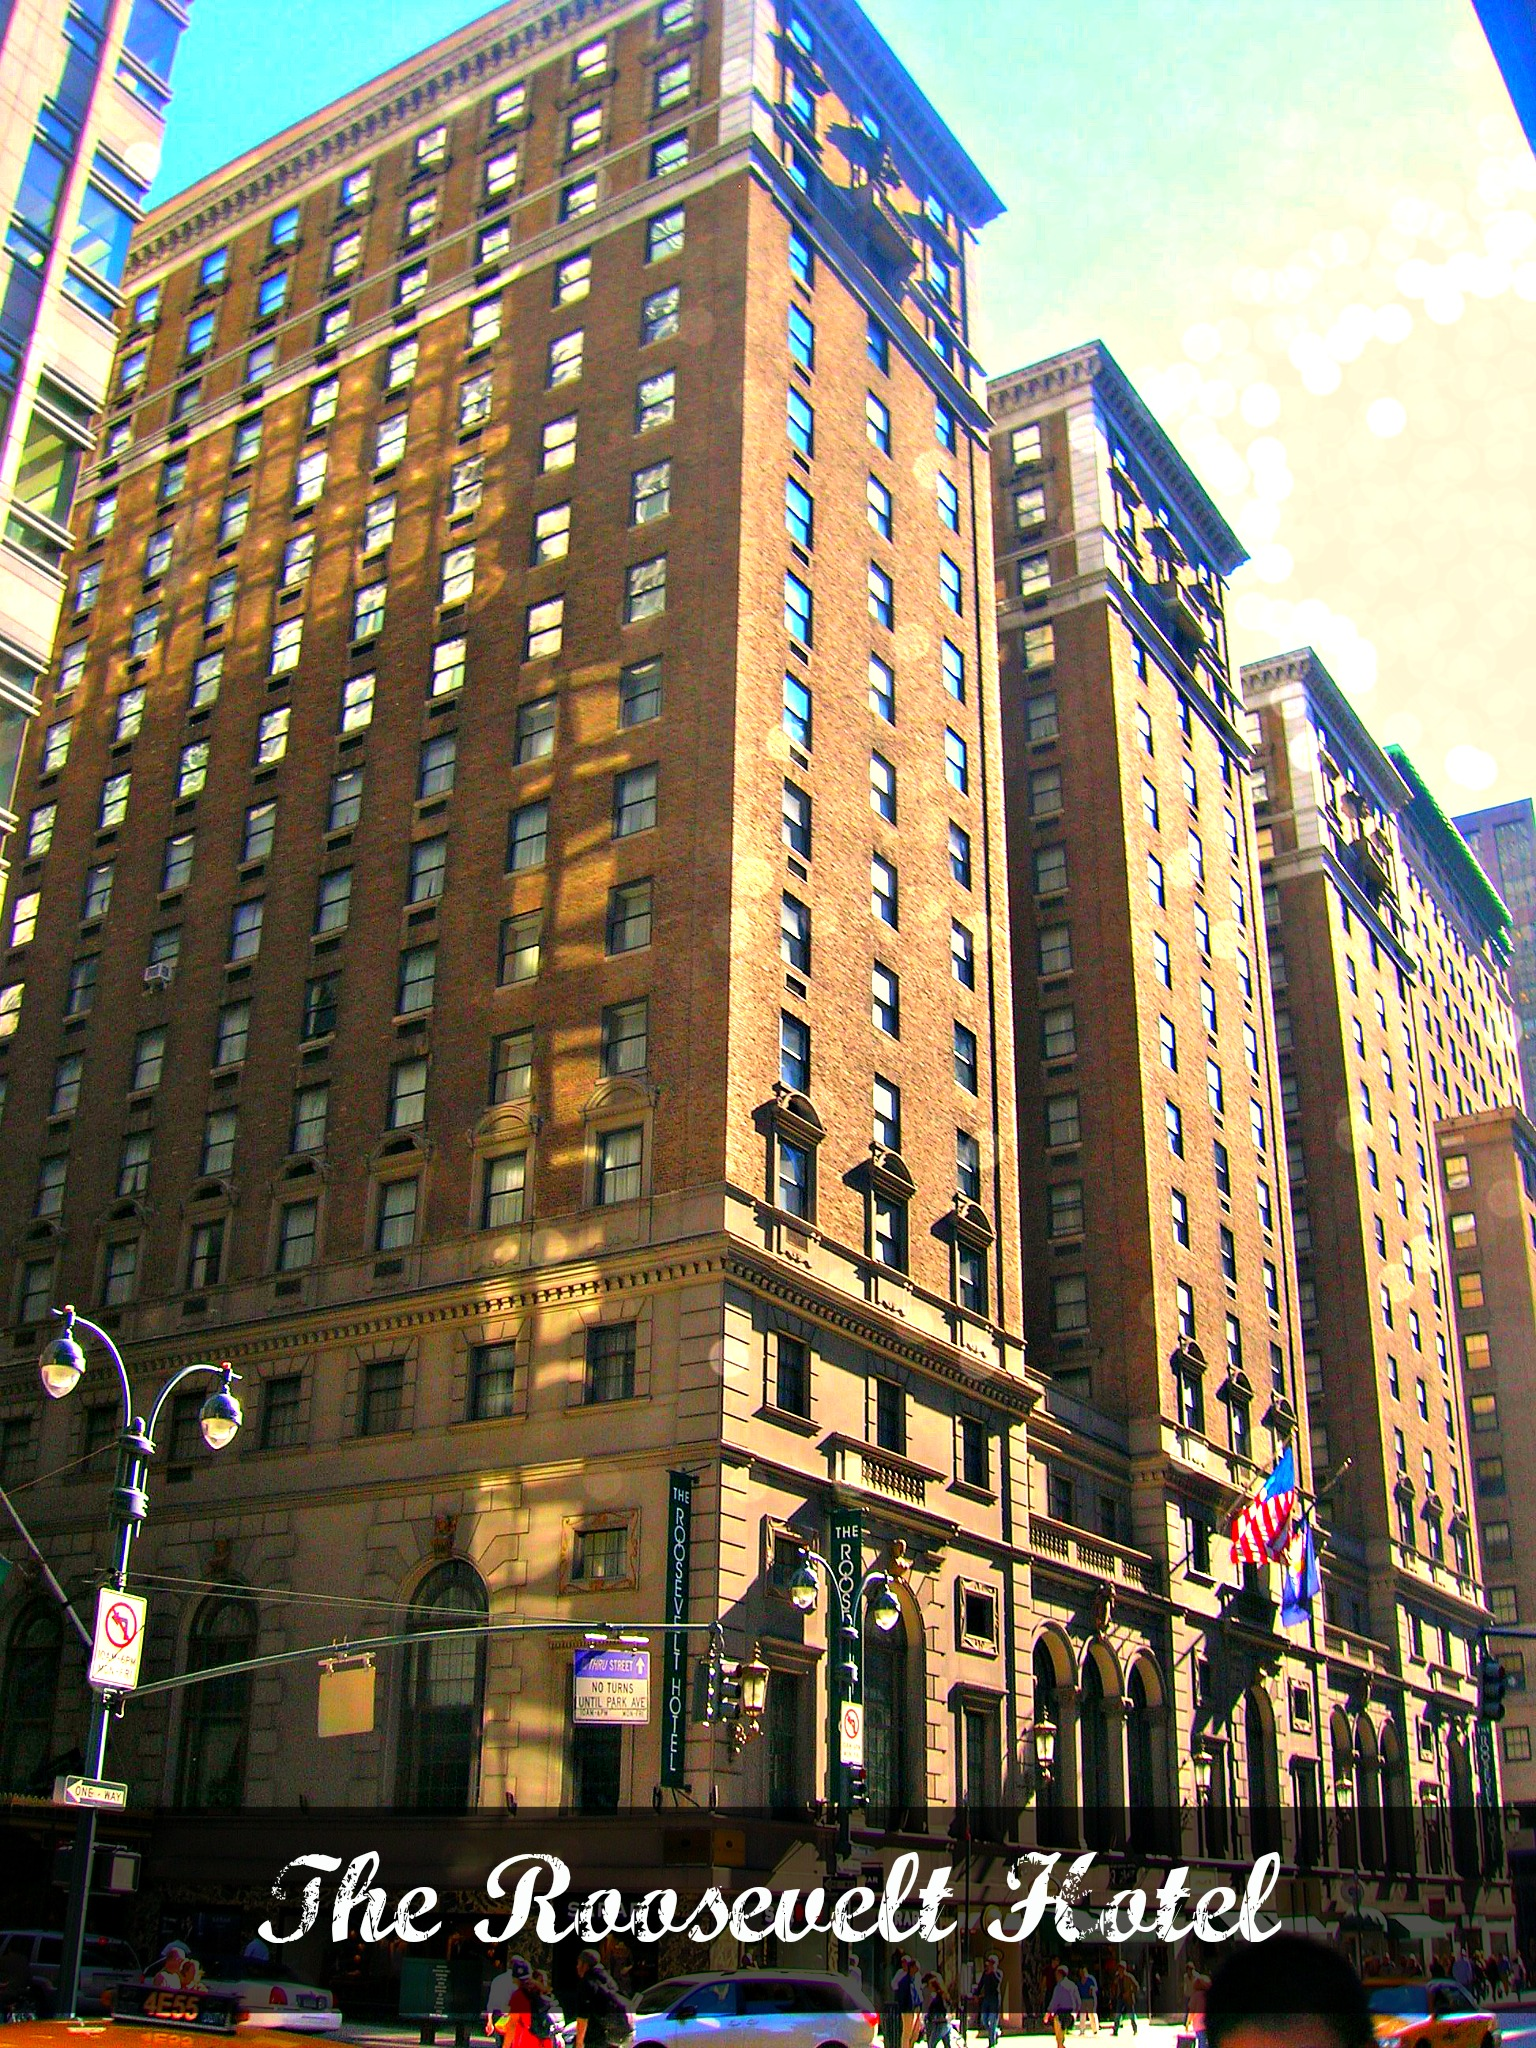 3 Famous Hotels In New York